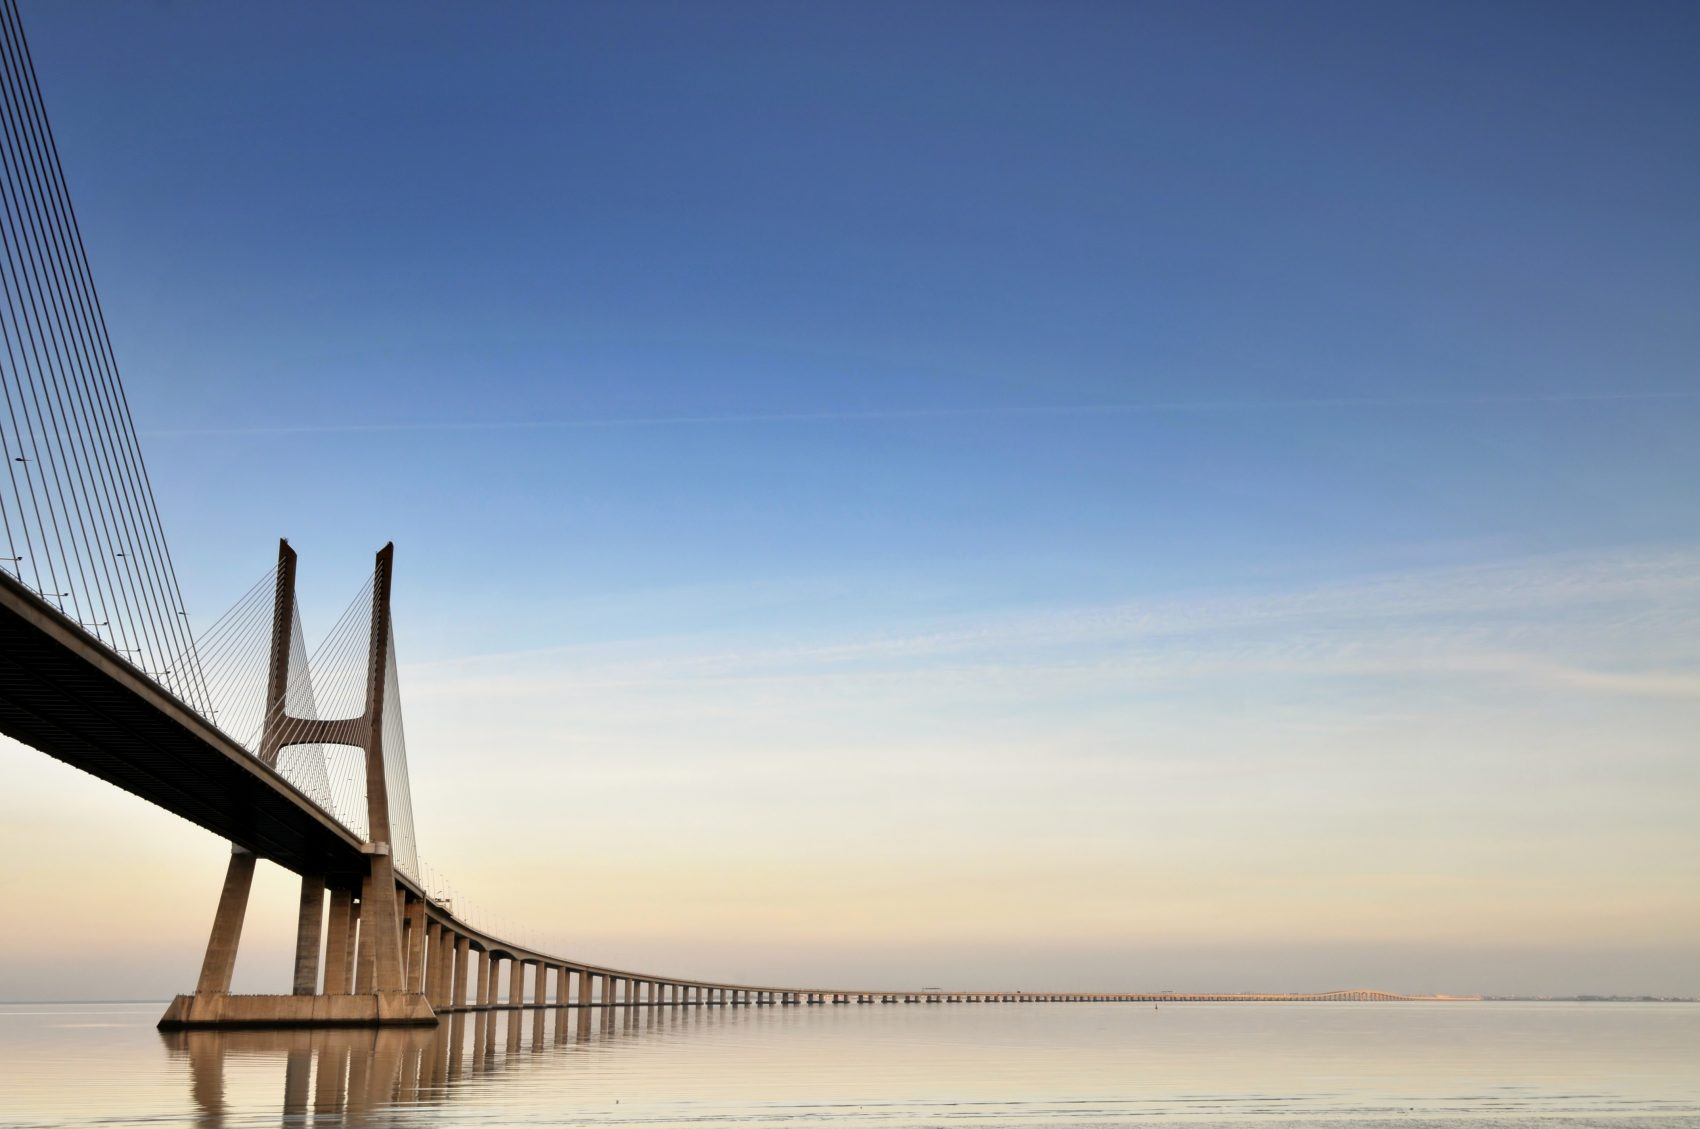 Longest bridge in Europe, Portugal